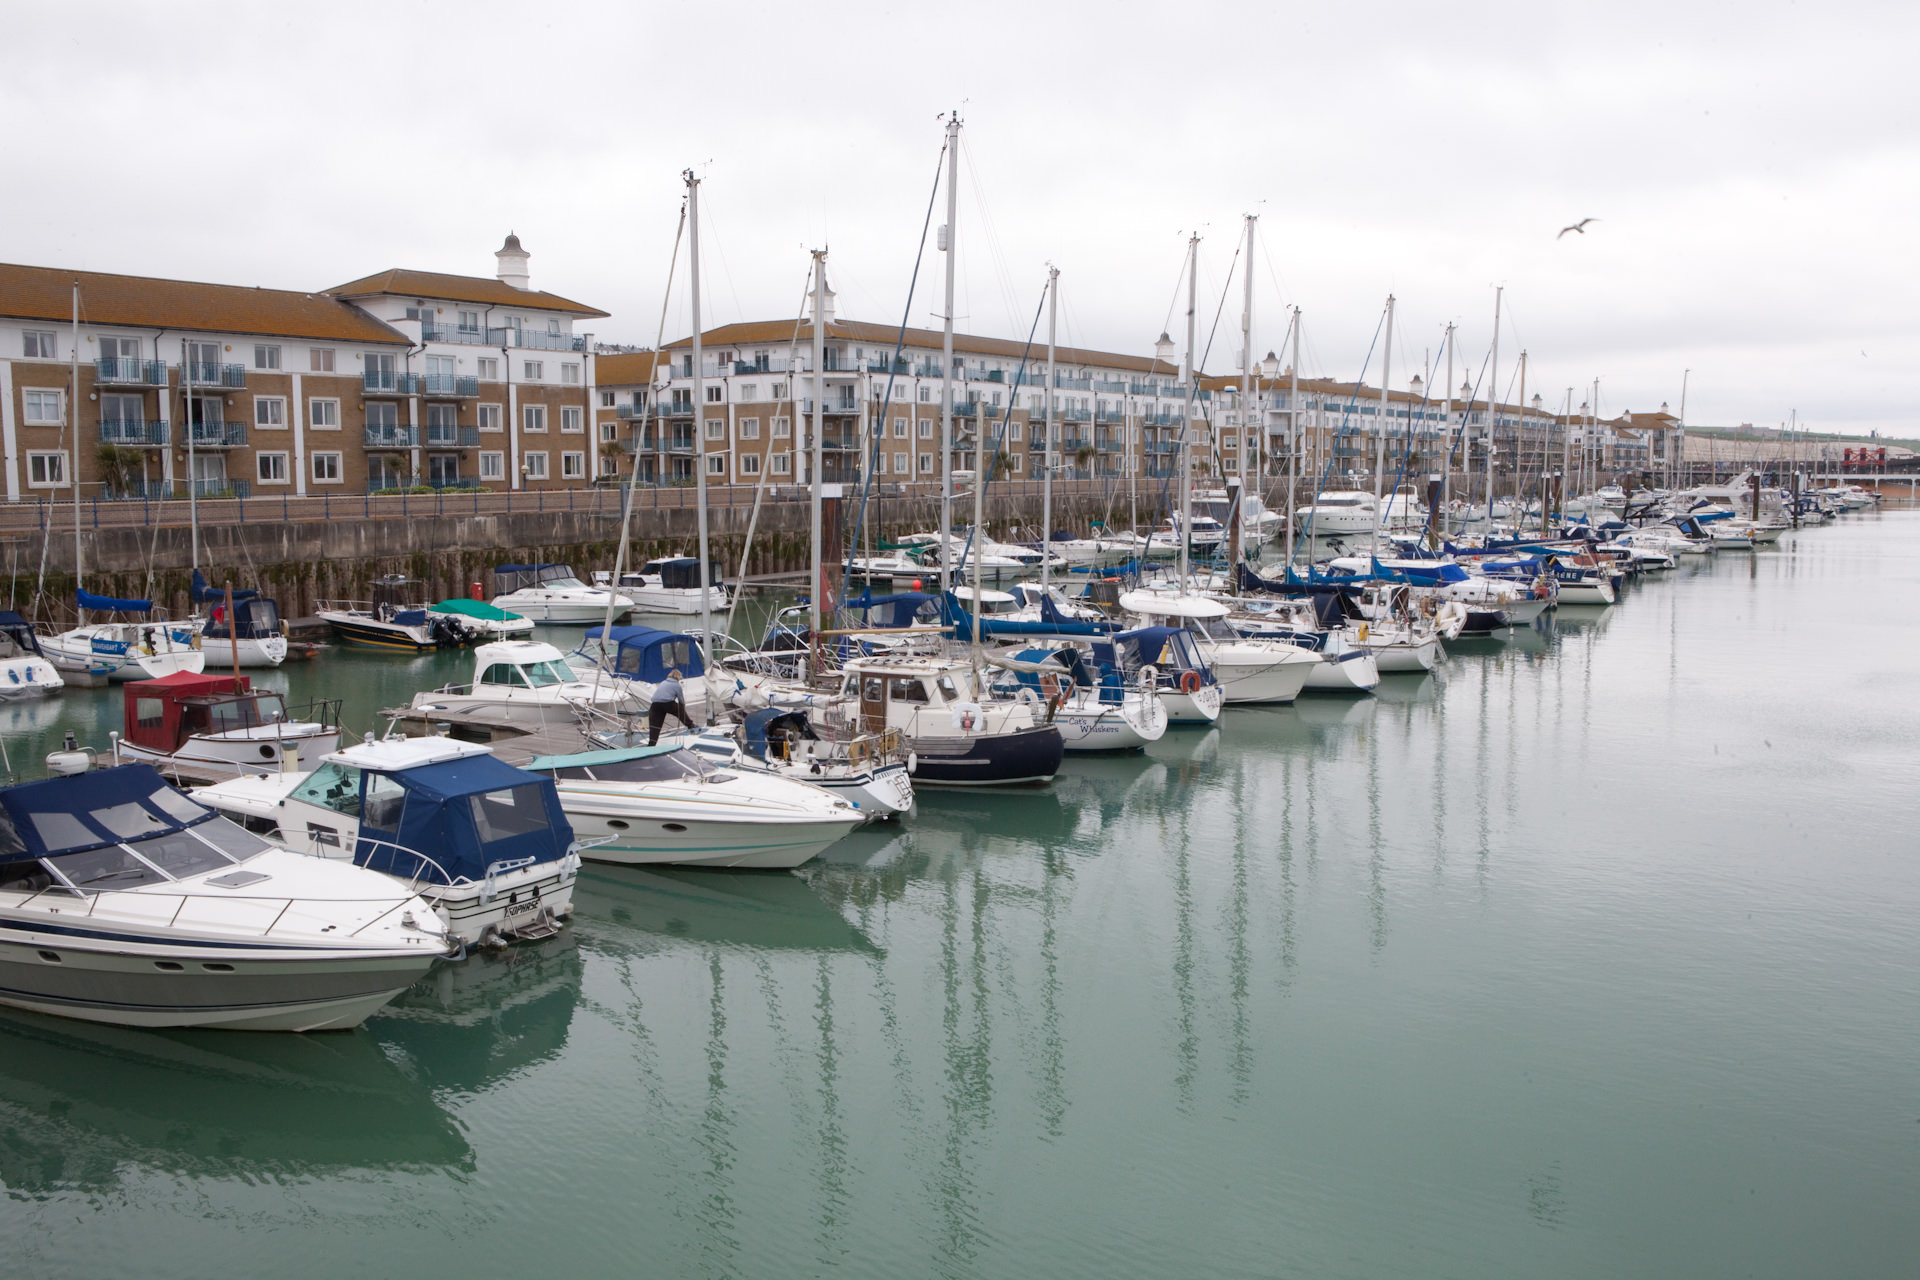 Brighton Marina. Silo is planning a zero carbon food delivery of food that comes from abroad. The food will be delivered on a sailing boat, called Tres Hombres, which will end it's journey here. Tres Hombres is an engineless sailing cargo ship and an ambassador for clean & sustainable transport over sea.